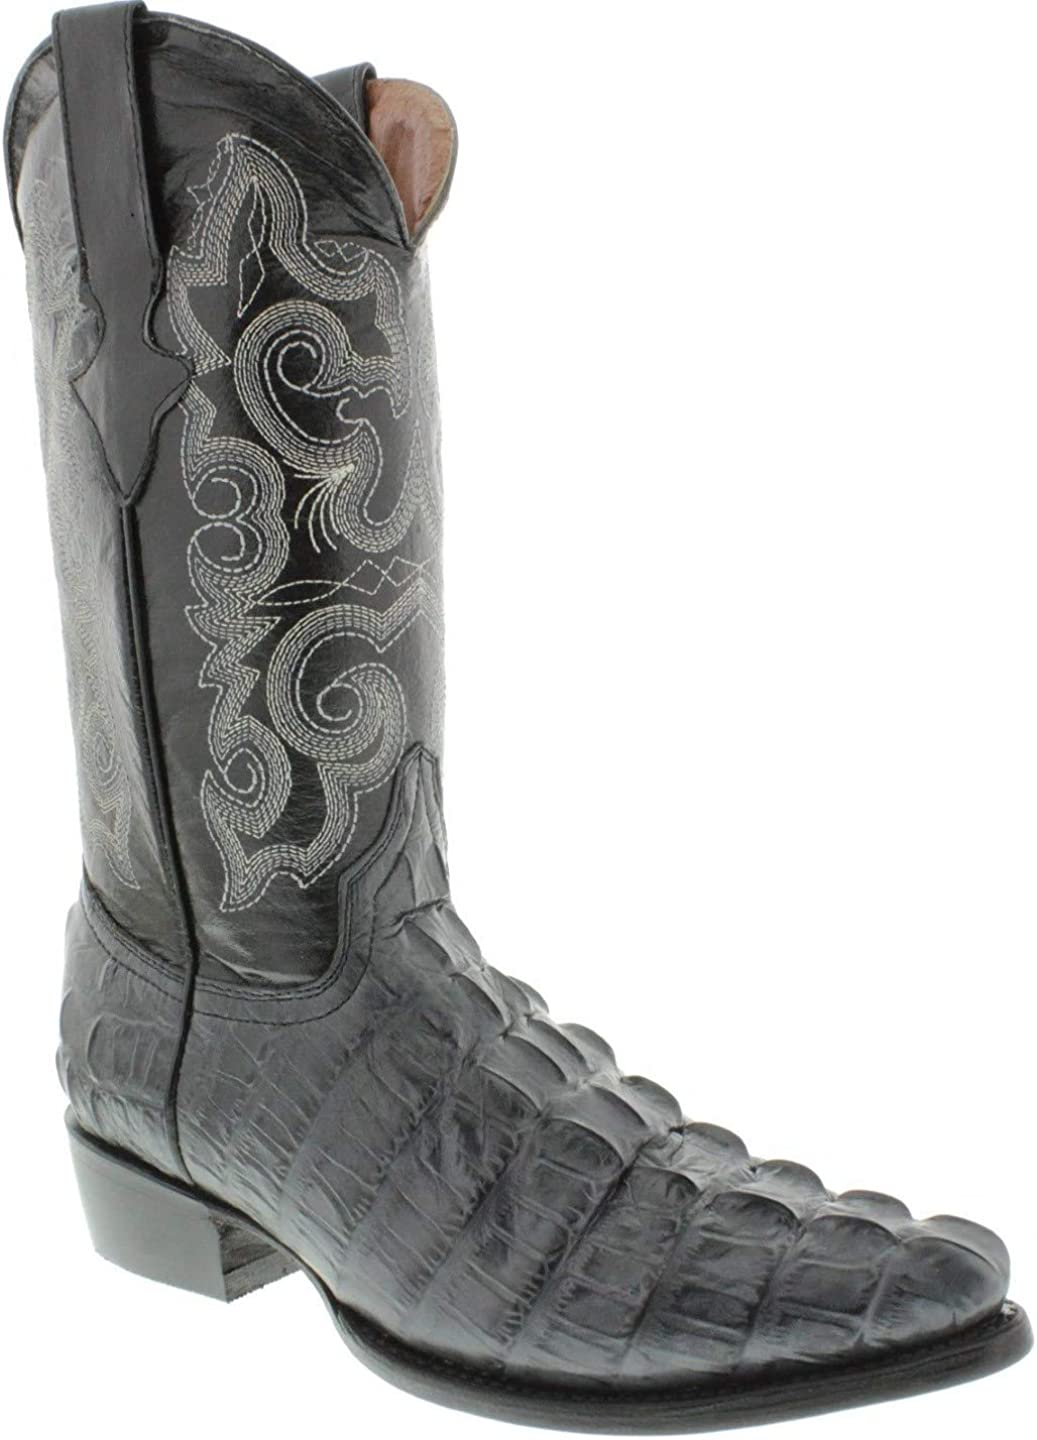 Mens Gray Western Cowboy Boots Crocodile Tail Leather To J Our shop most popular Max 79% OFF Print